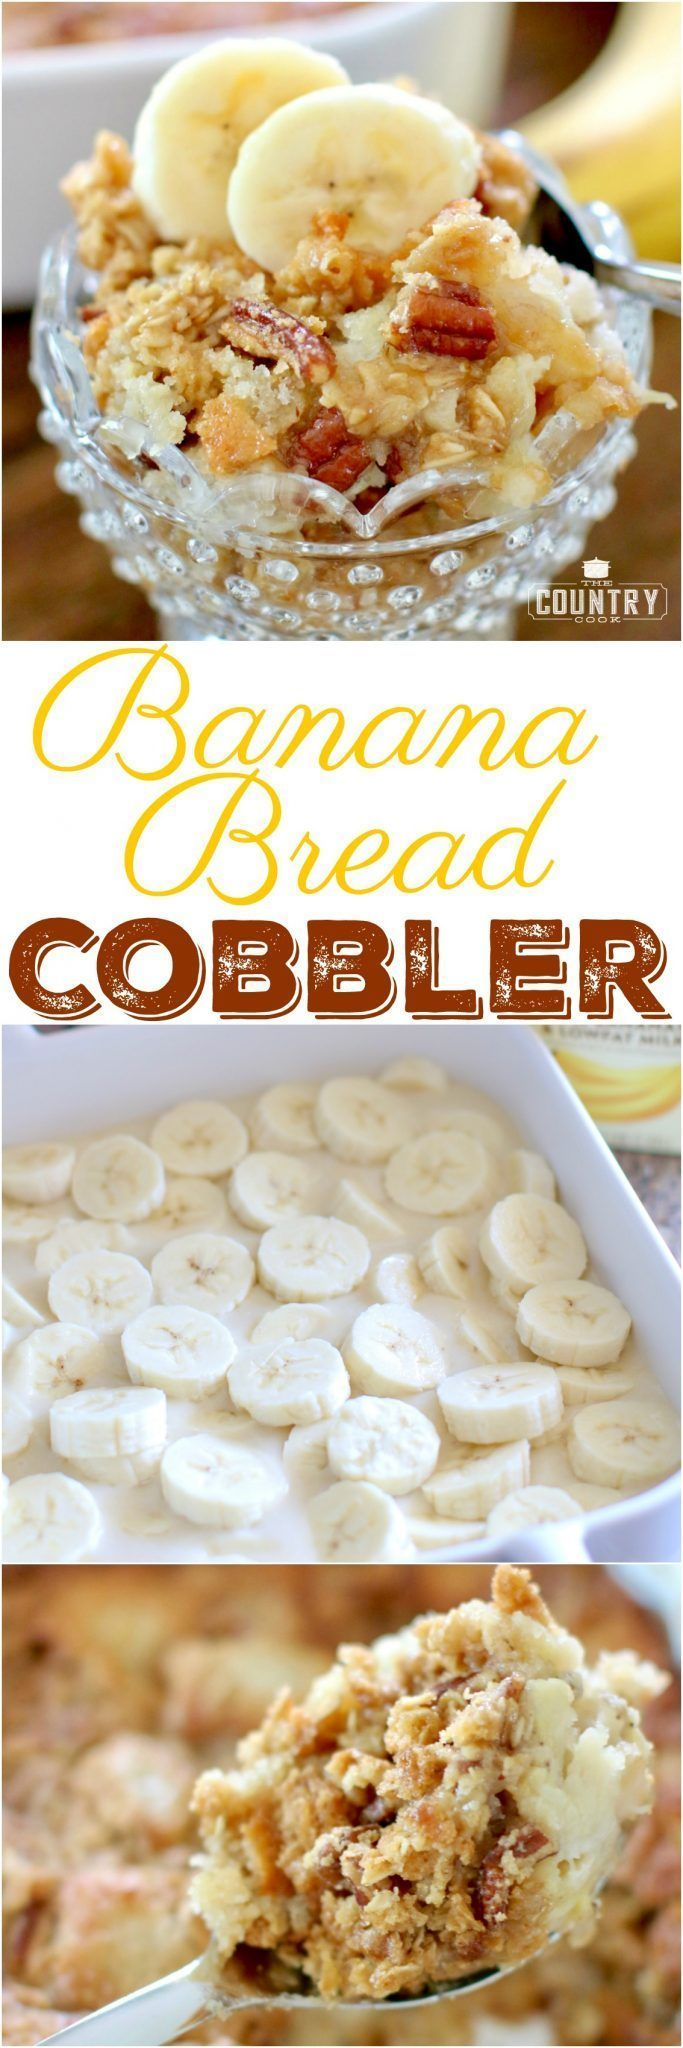 68 best Most Pinned Banana Bread Recipes images on Pinterest ...